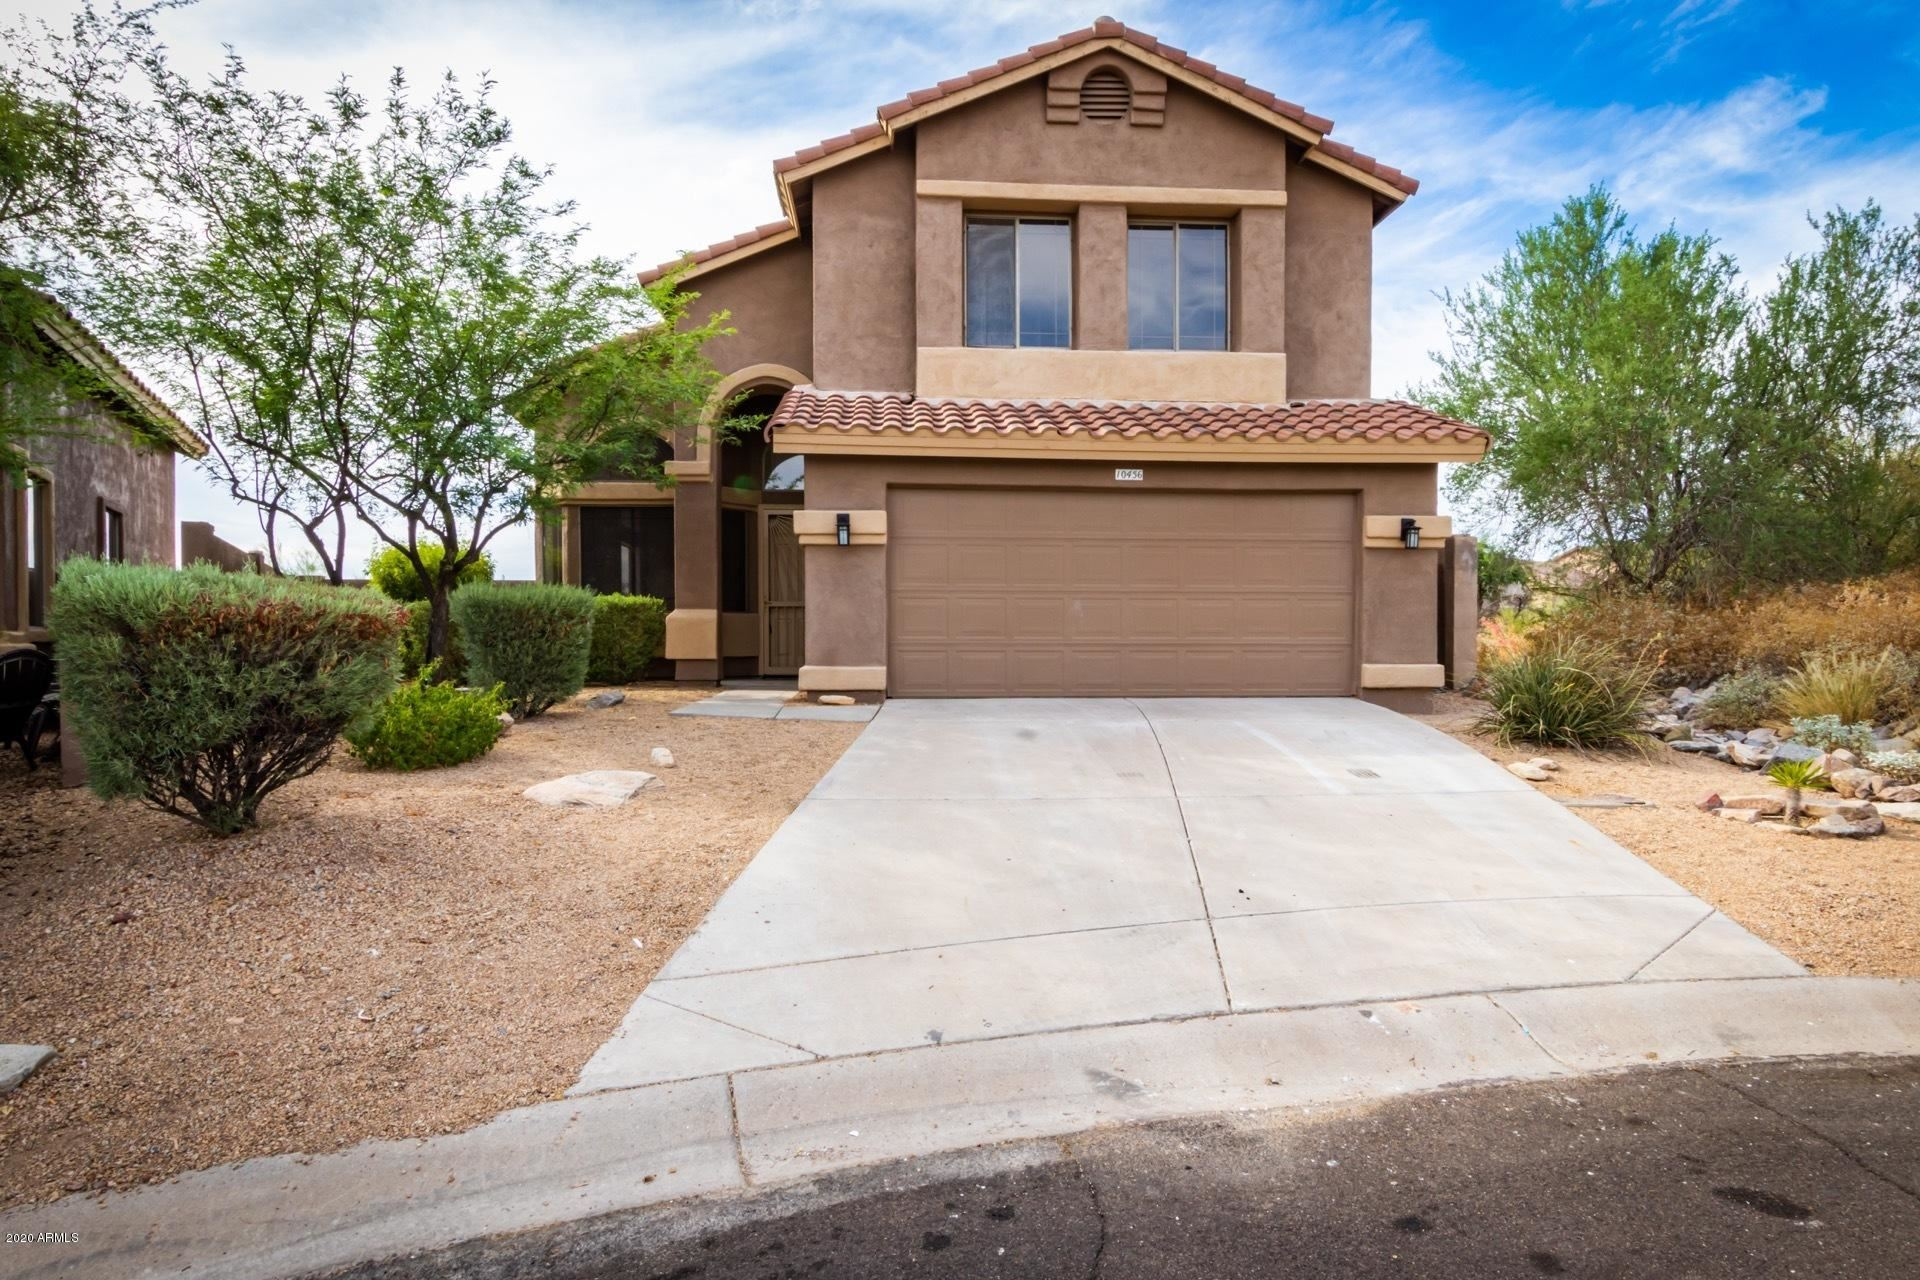 10456 E PENSTAMIN Drive, Scottsdale, AZ 85255 - MLS#: 6095774